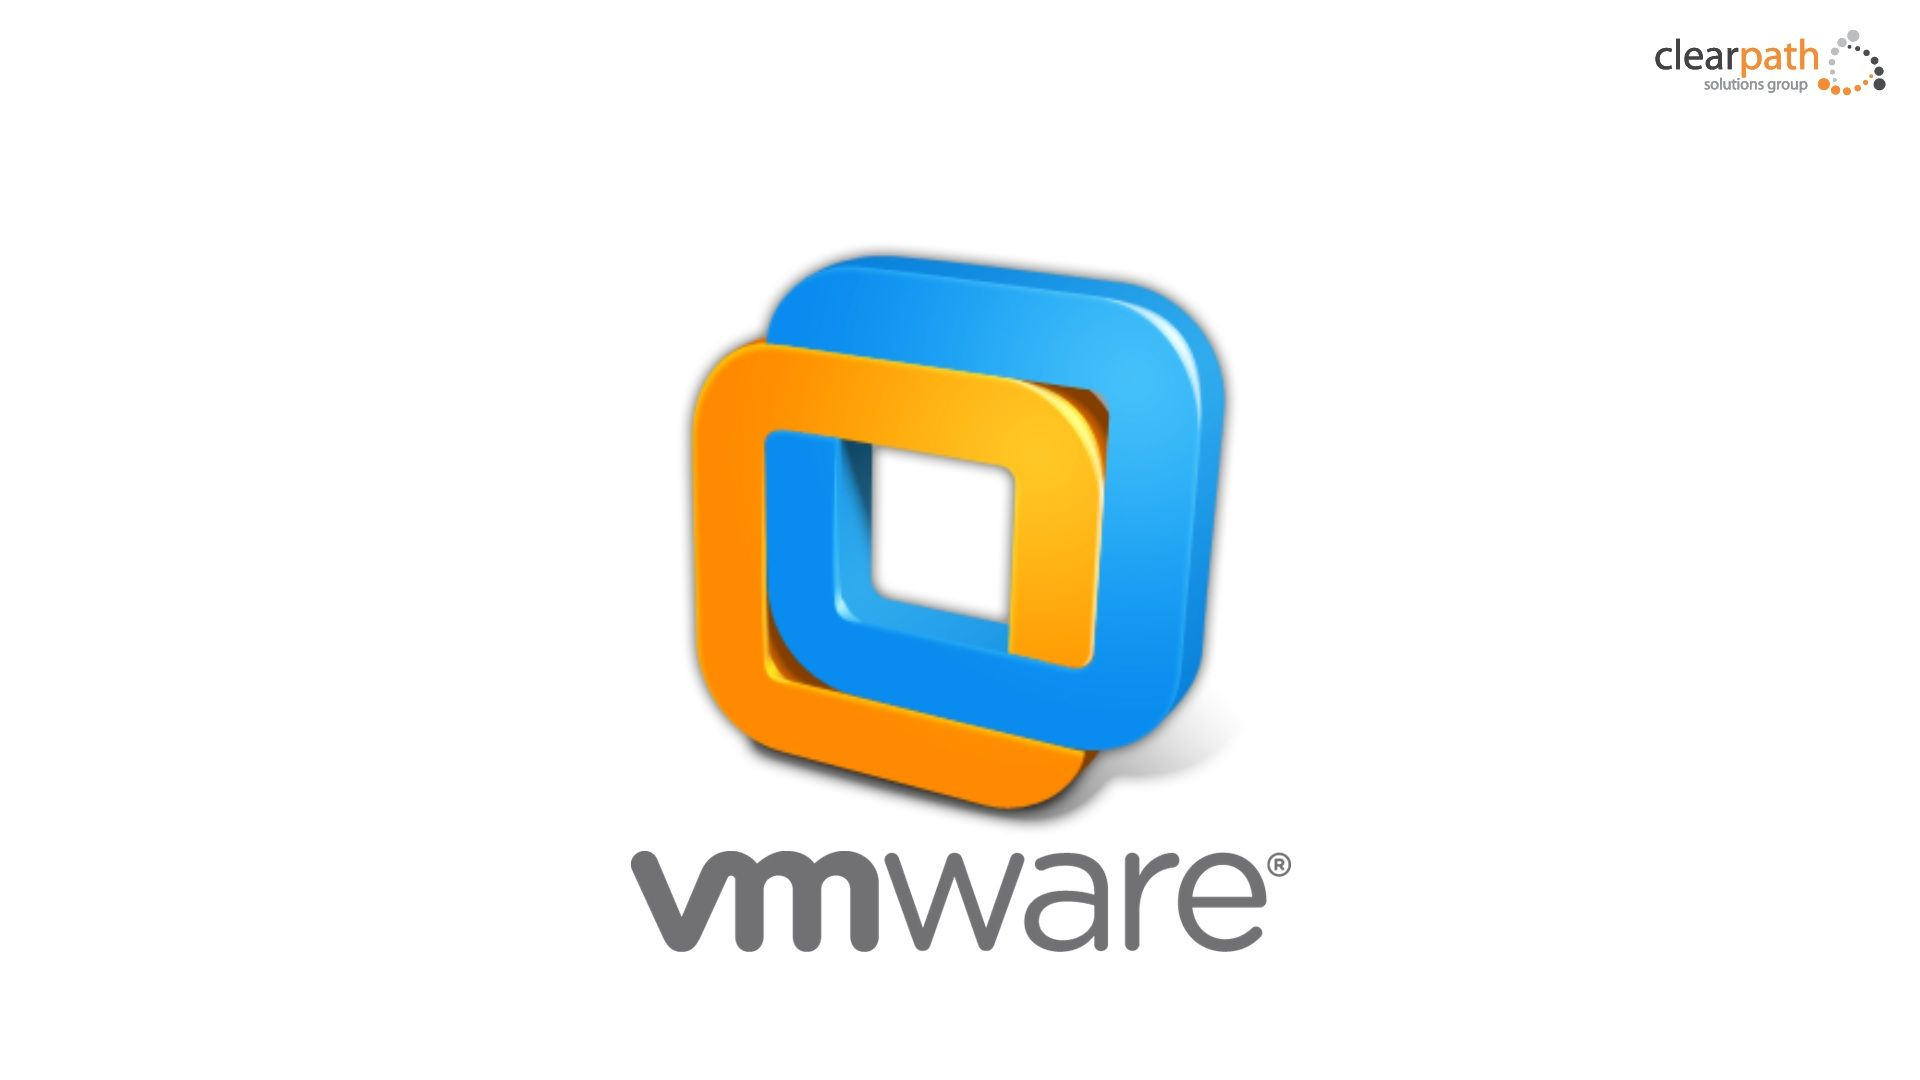 This Certification Validates The Ability To Install Configure And Administer A Cloud Environment Using Vcloud Vmware Workstation Linux Linux Operating System